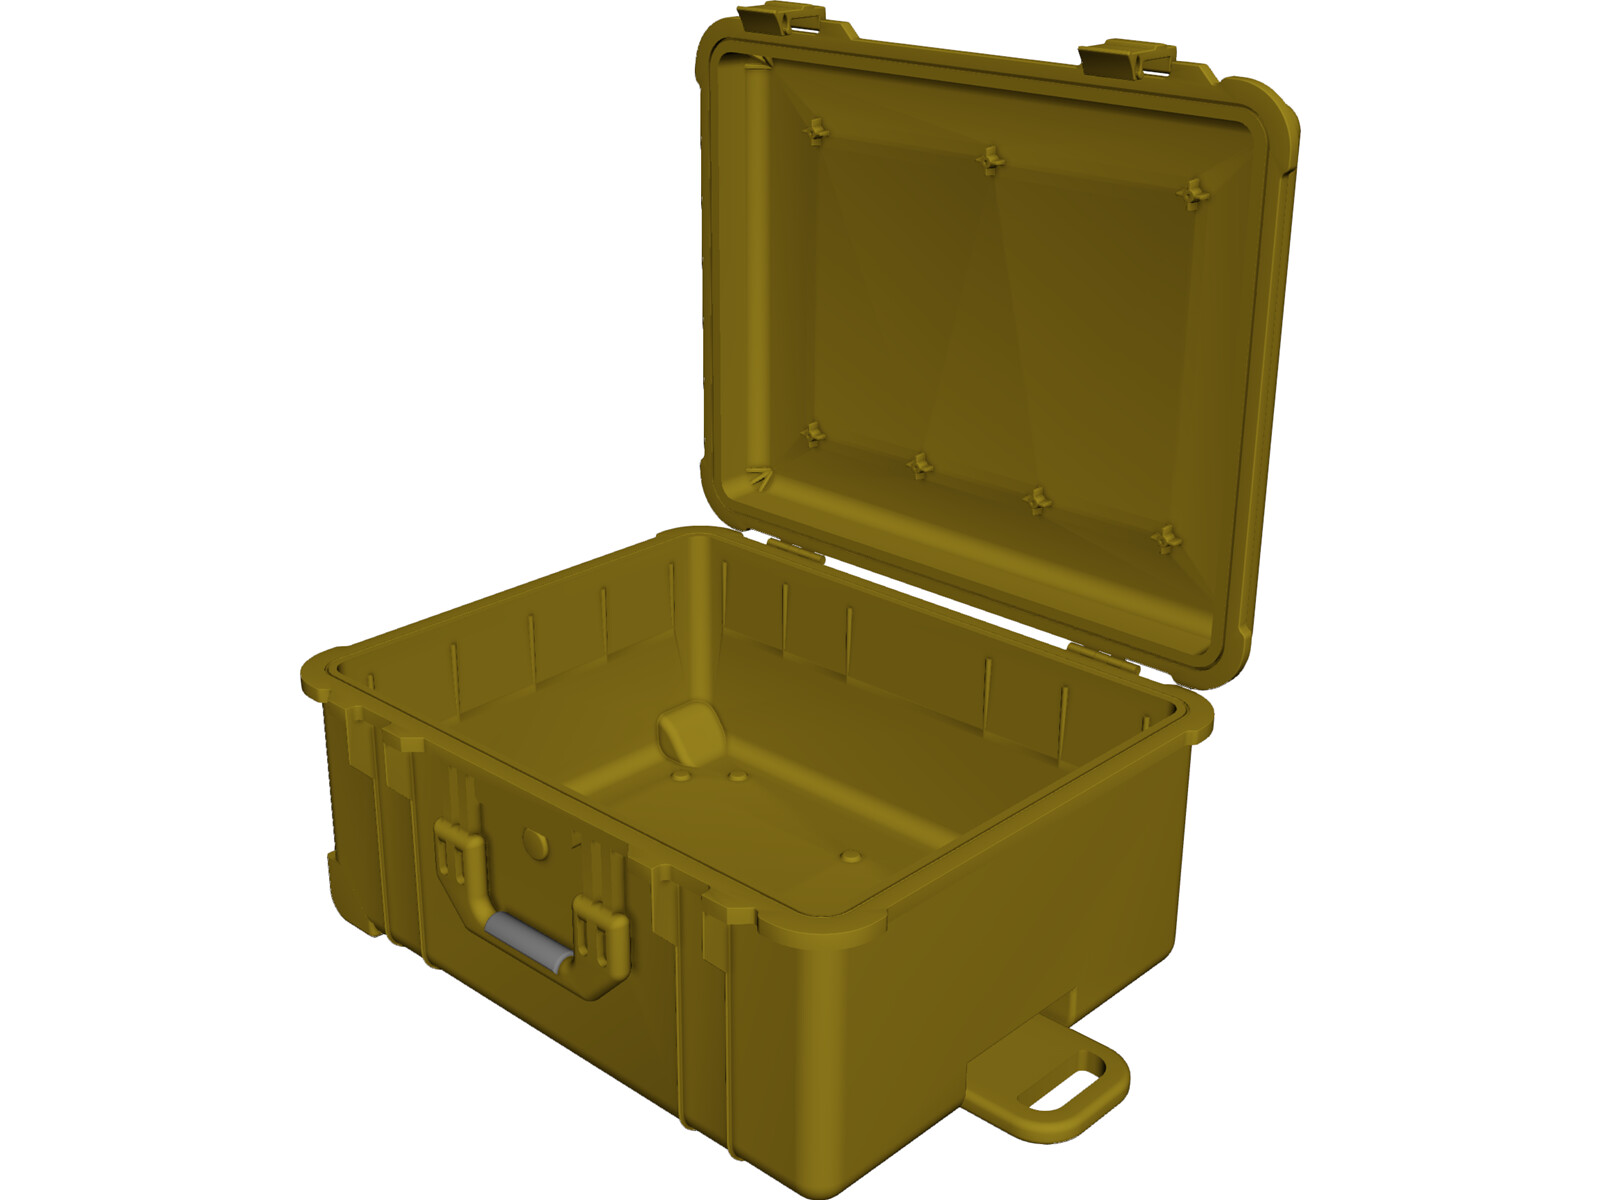 Pelican Case Model 1610 3d Cad Model 3d Cad Browser